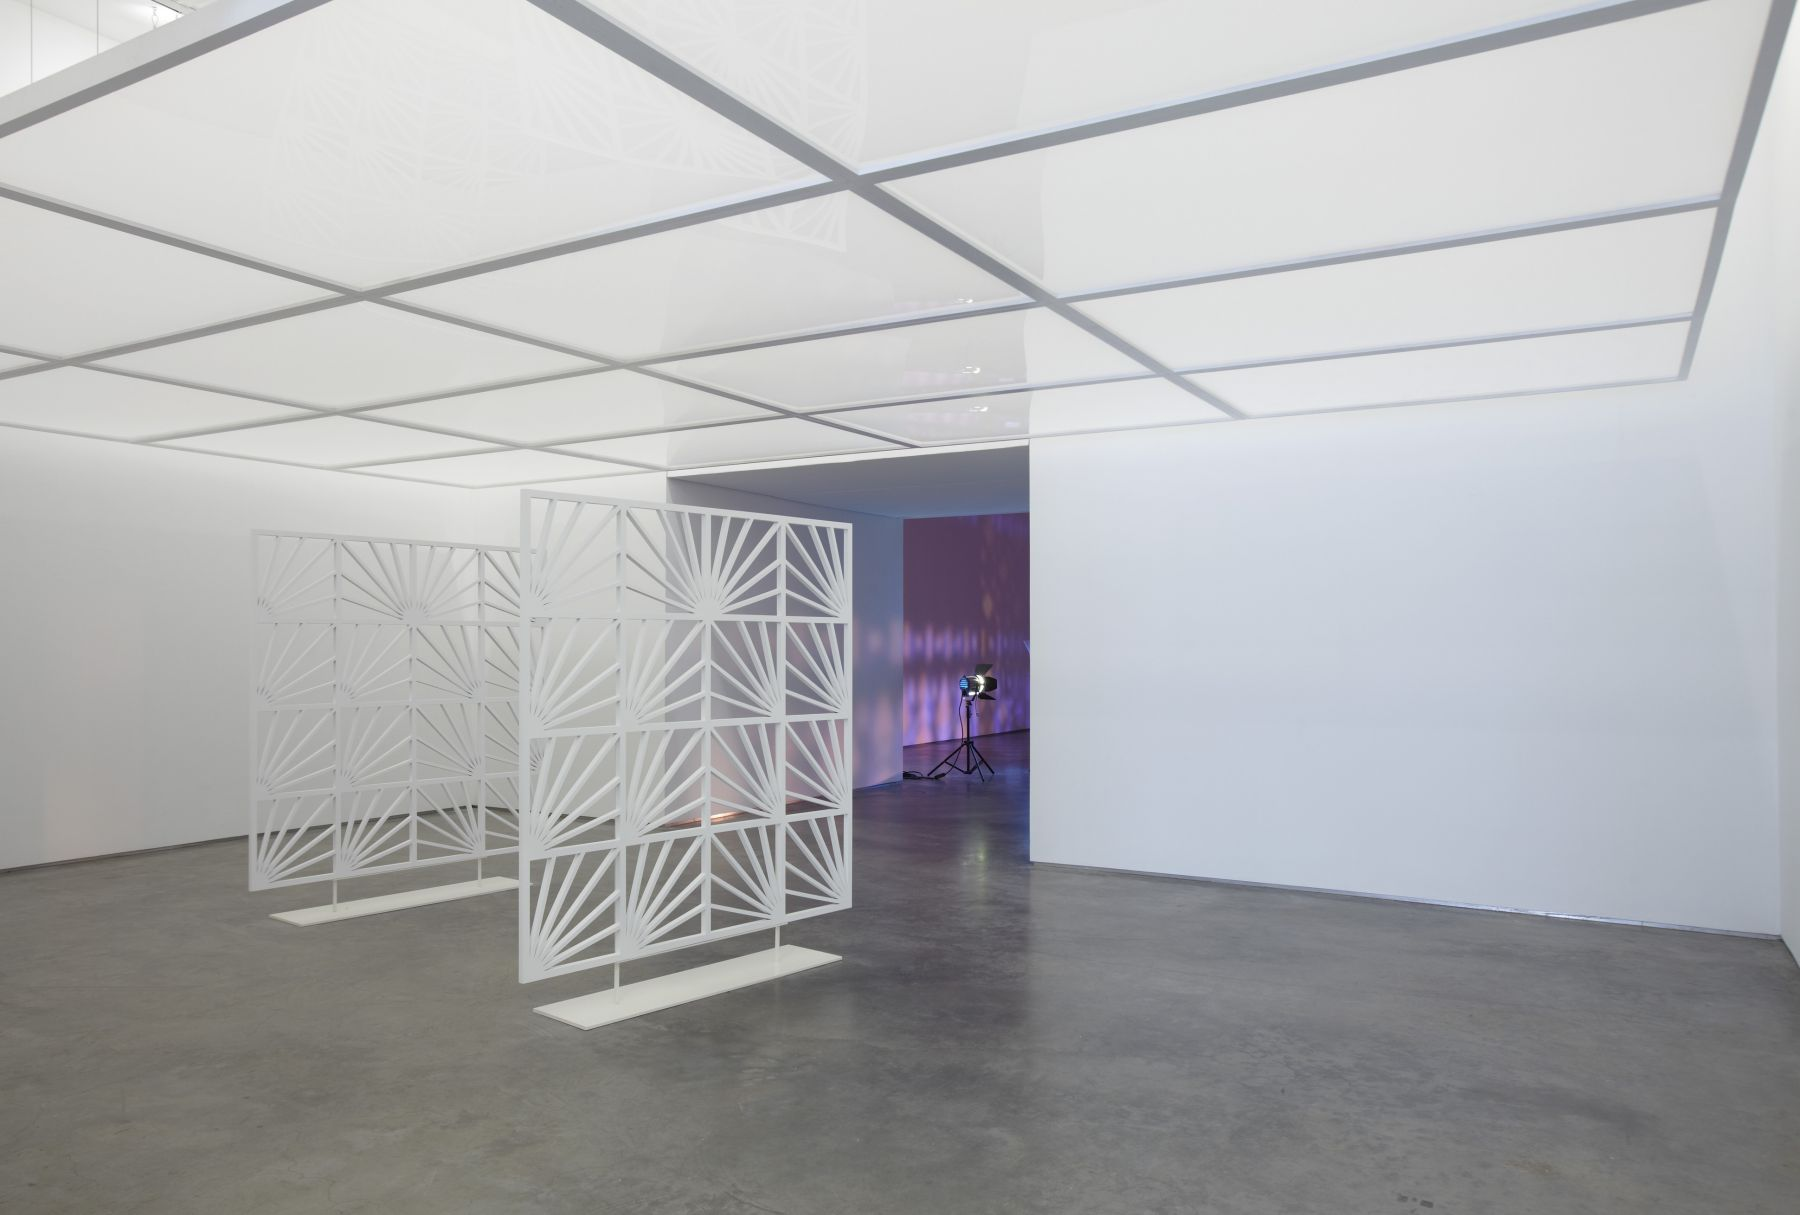 Depiction of a Star Obscured by Another Figure (Installation View), Marianne Boesky Gallery, 2011